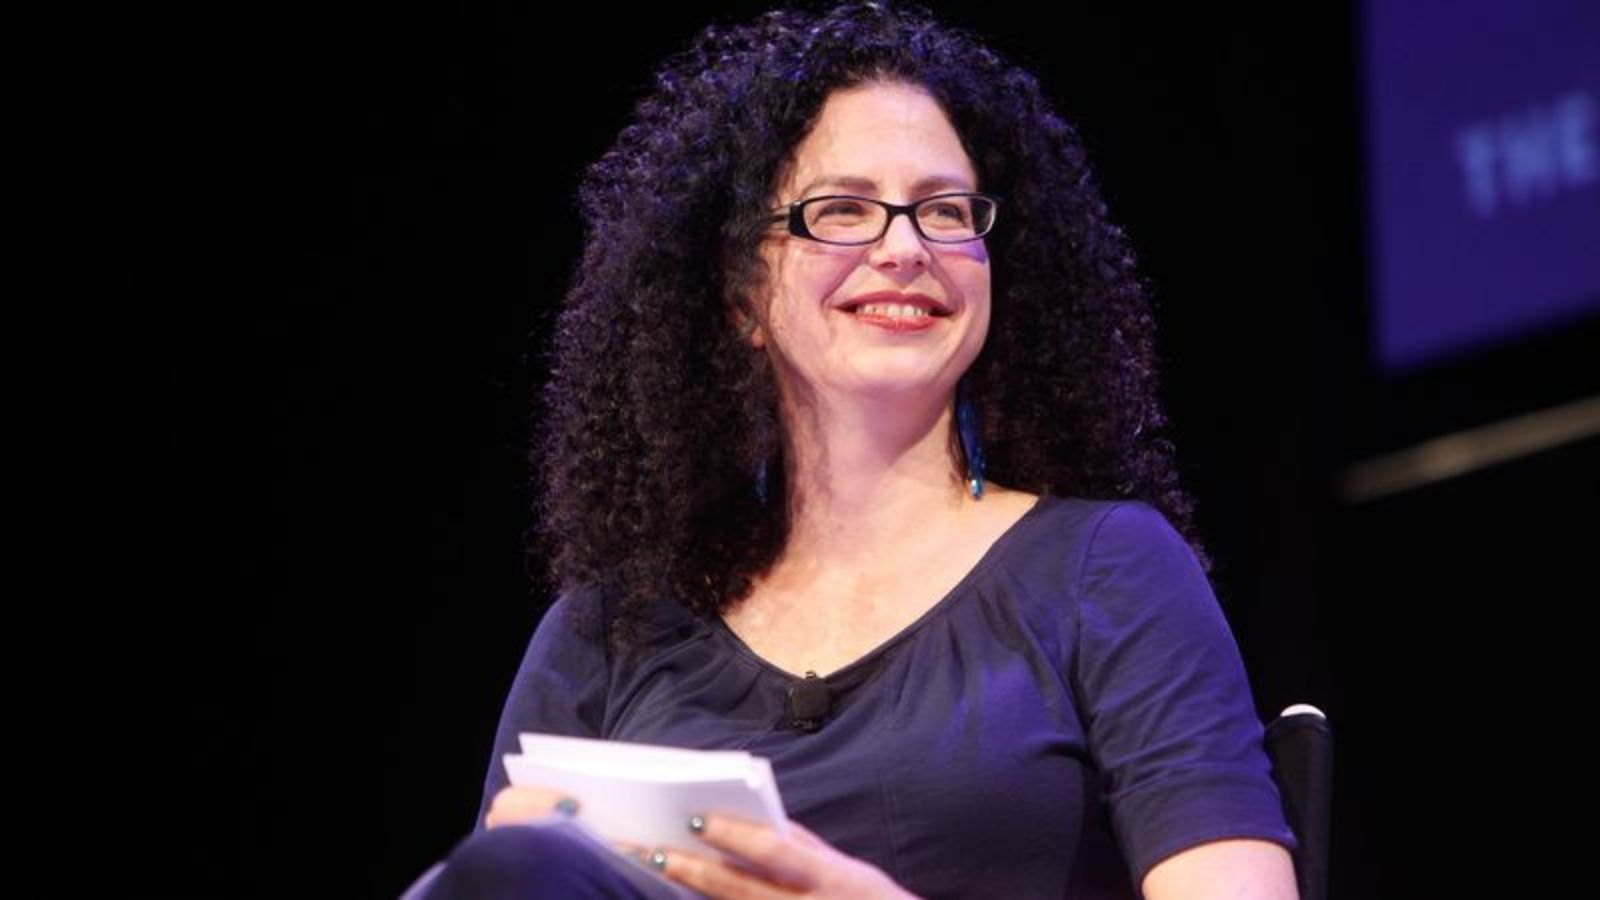 a white woman with glasses with shoulder-length curls sits on a stage